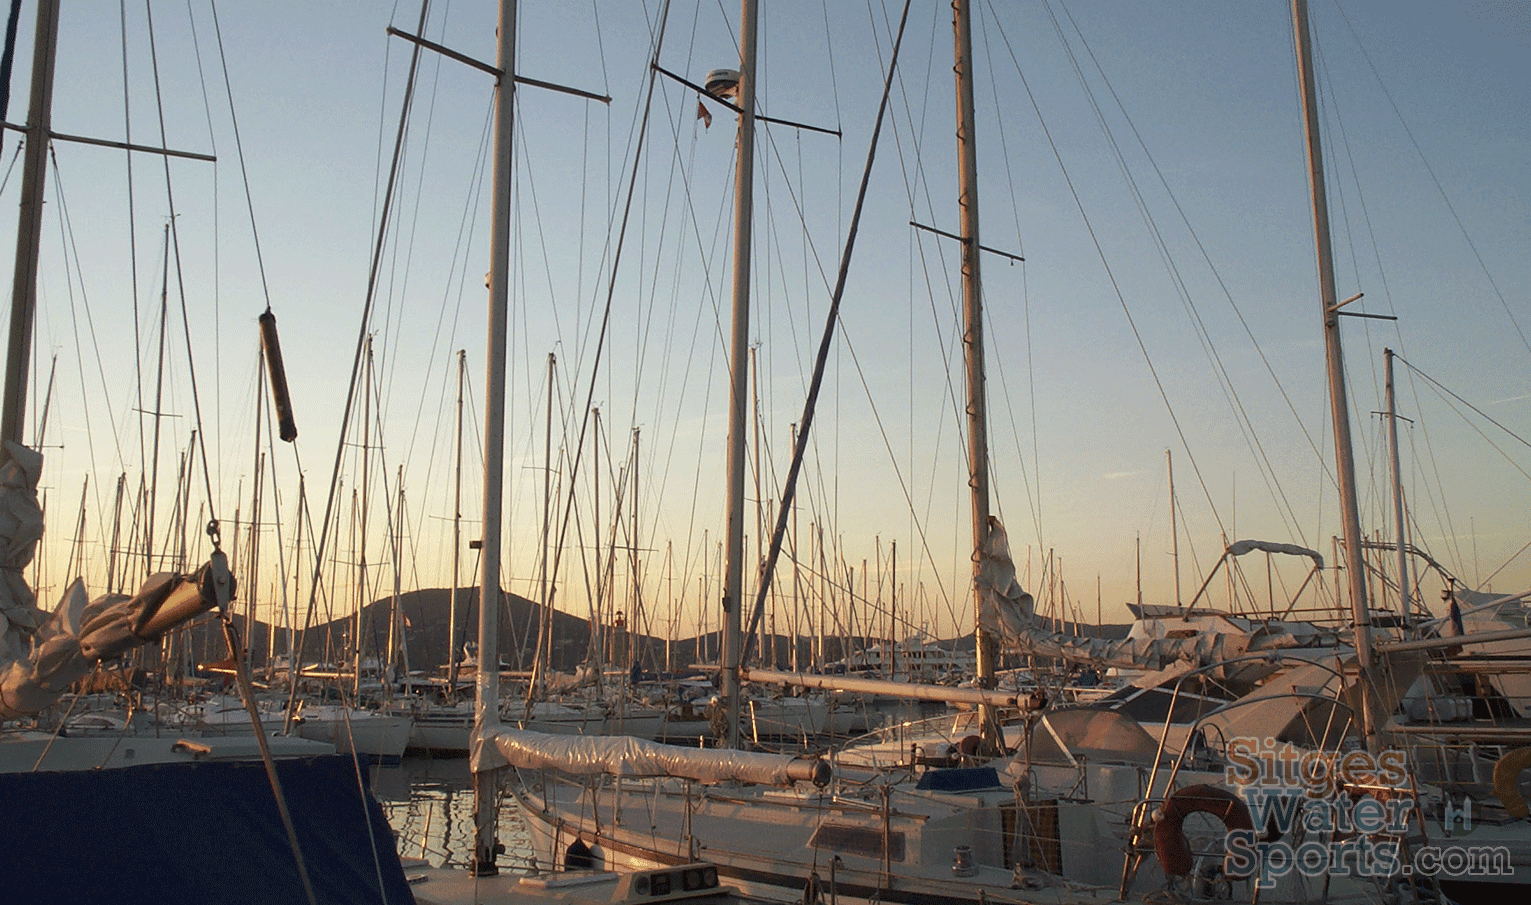 Charter a Yacht in Sitges